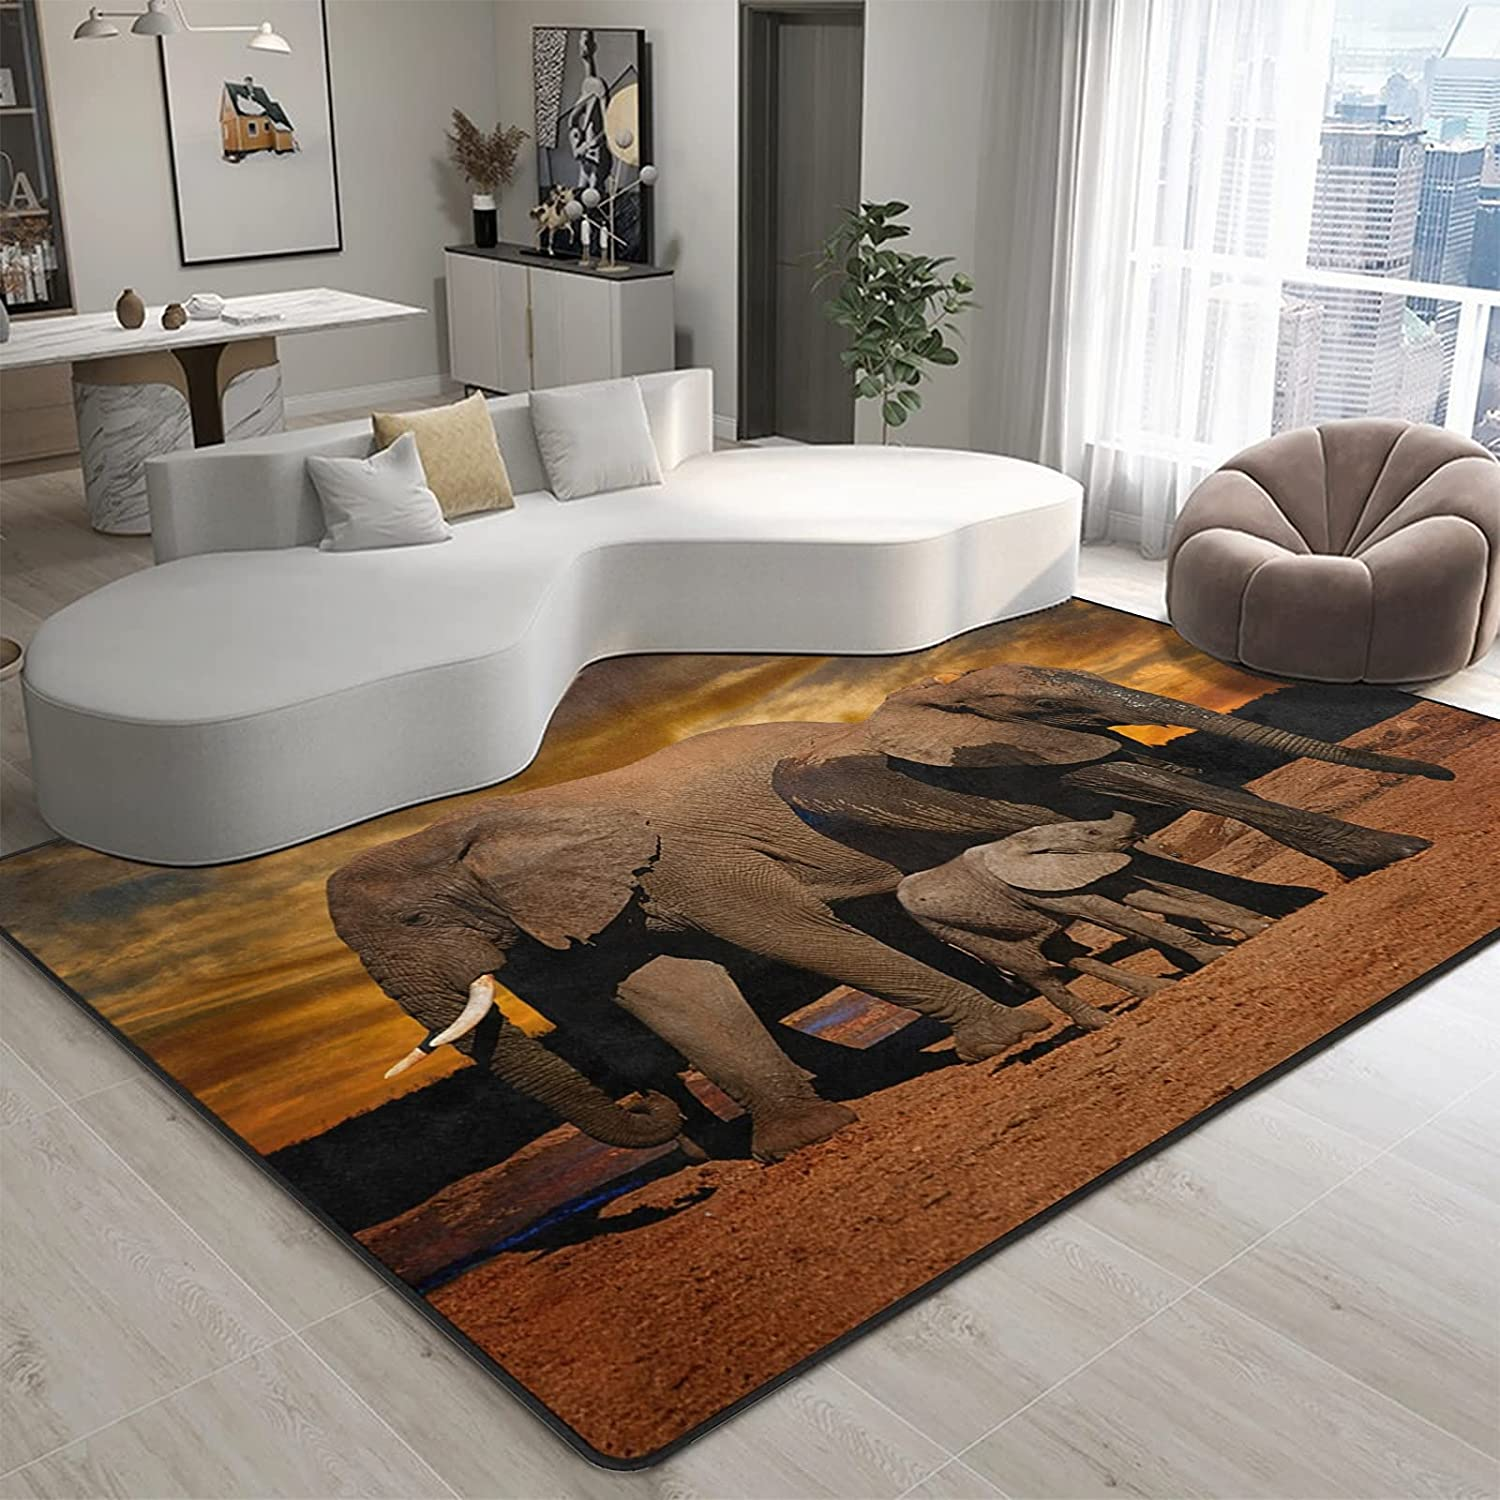 9CH African Elephant Sunset Area Rug 7'X5', Non-Slip African Rugs for Living Room Bedroom Dinning Kitchen Office Decor